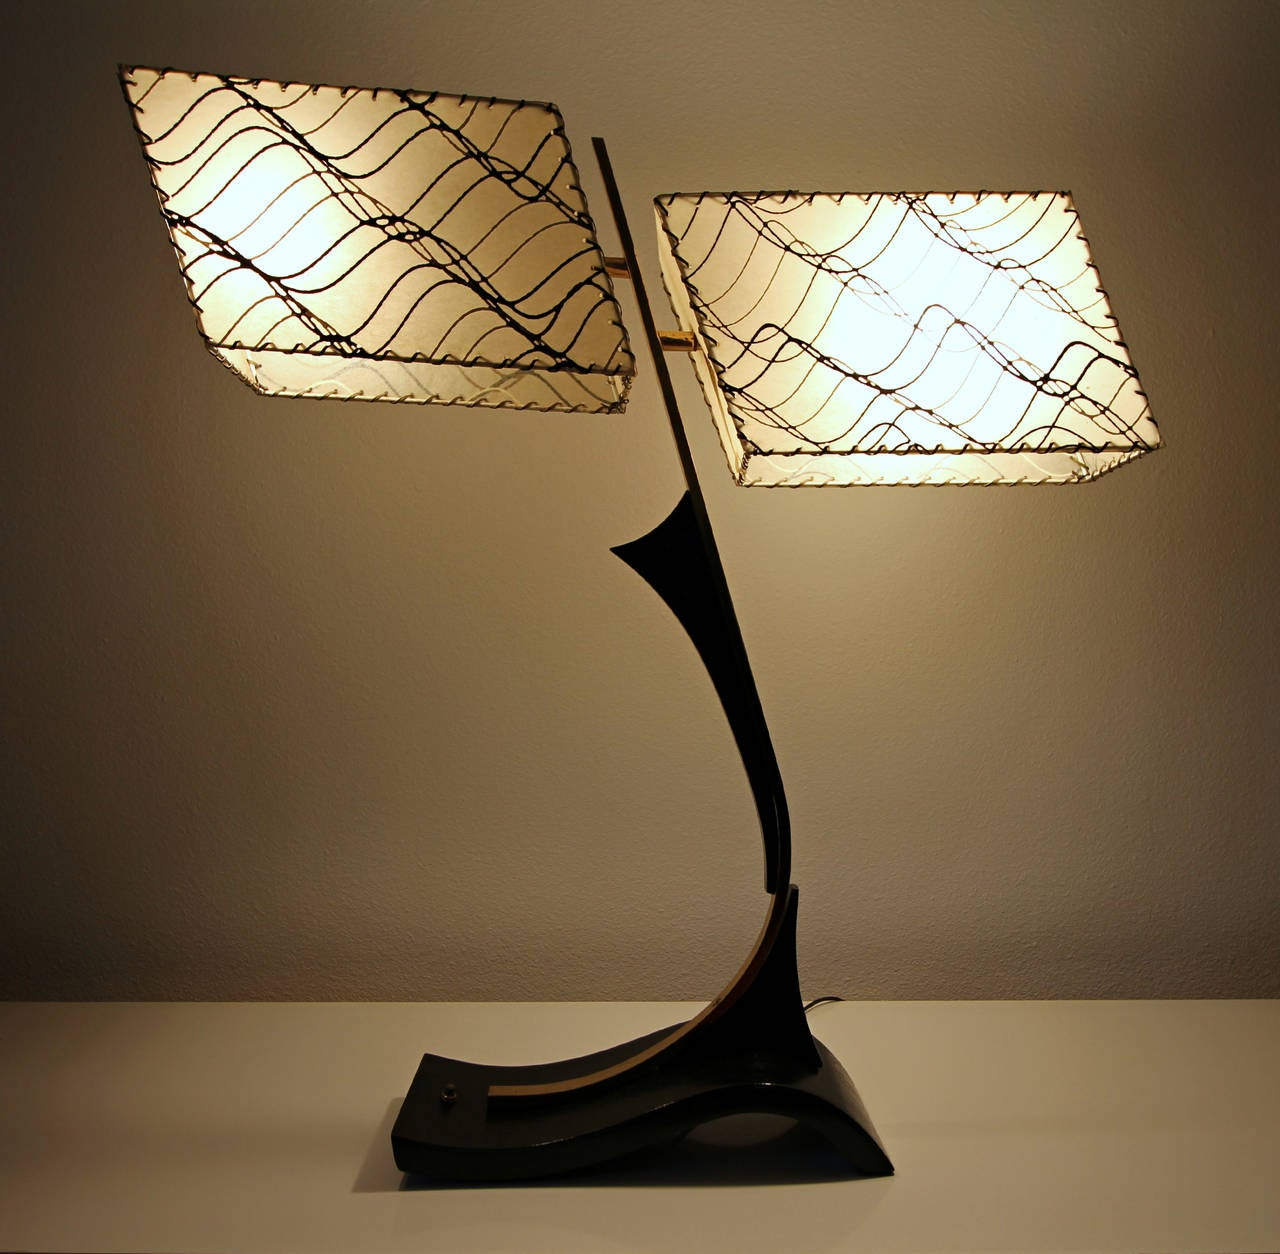 midcentury dual shade majestic table lamp for sale at 1stdibs. Black Bedroom Furniture Sets. Home Design Ideas